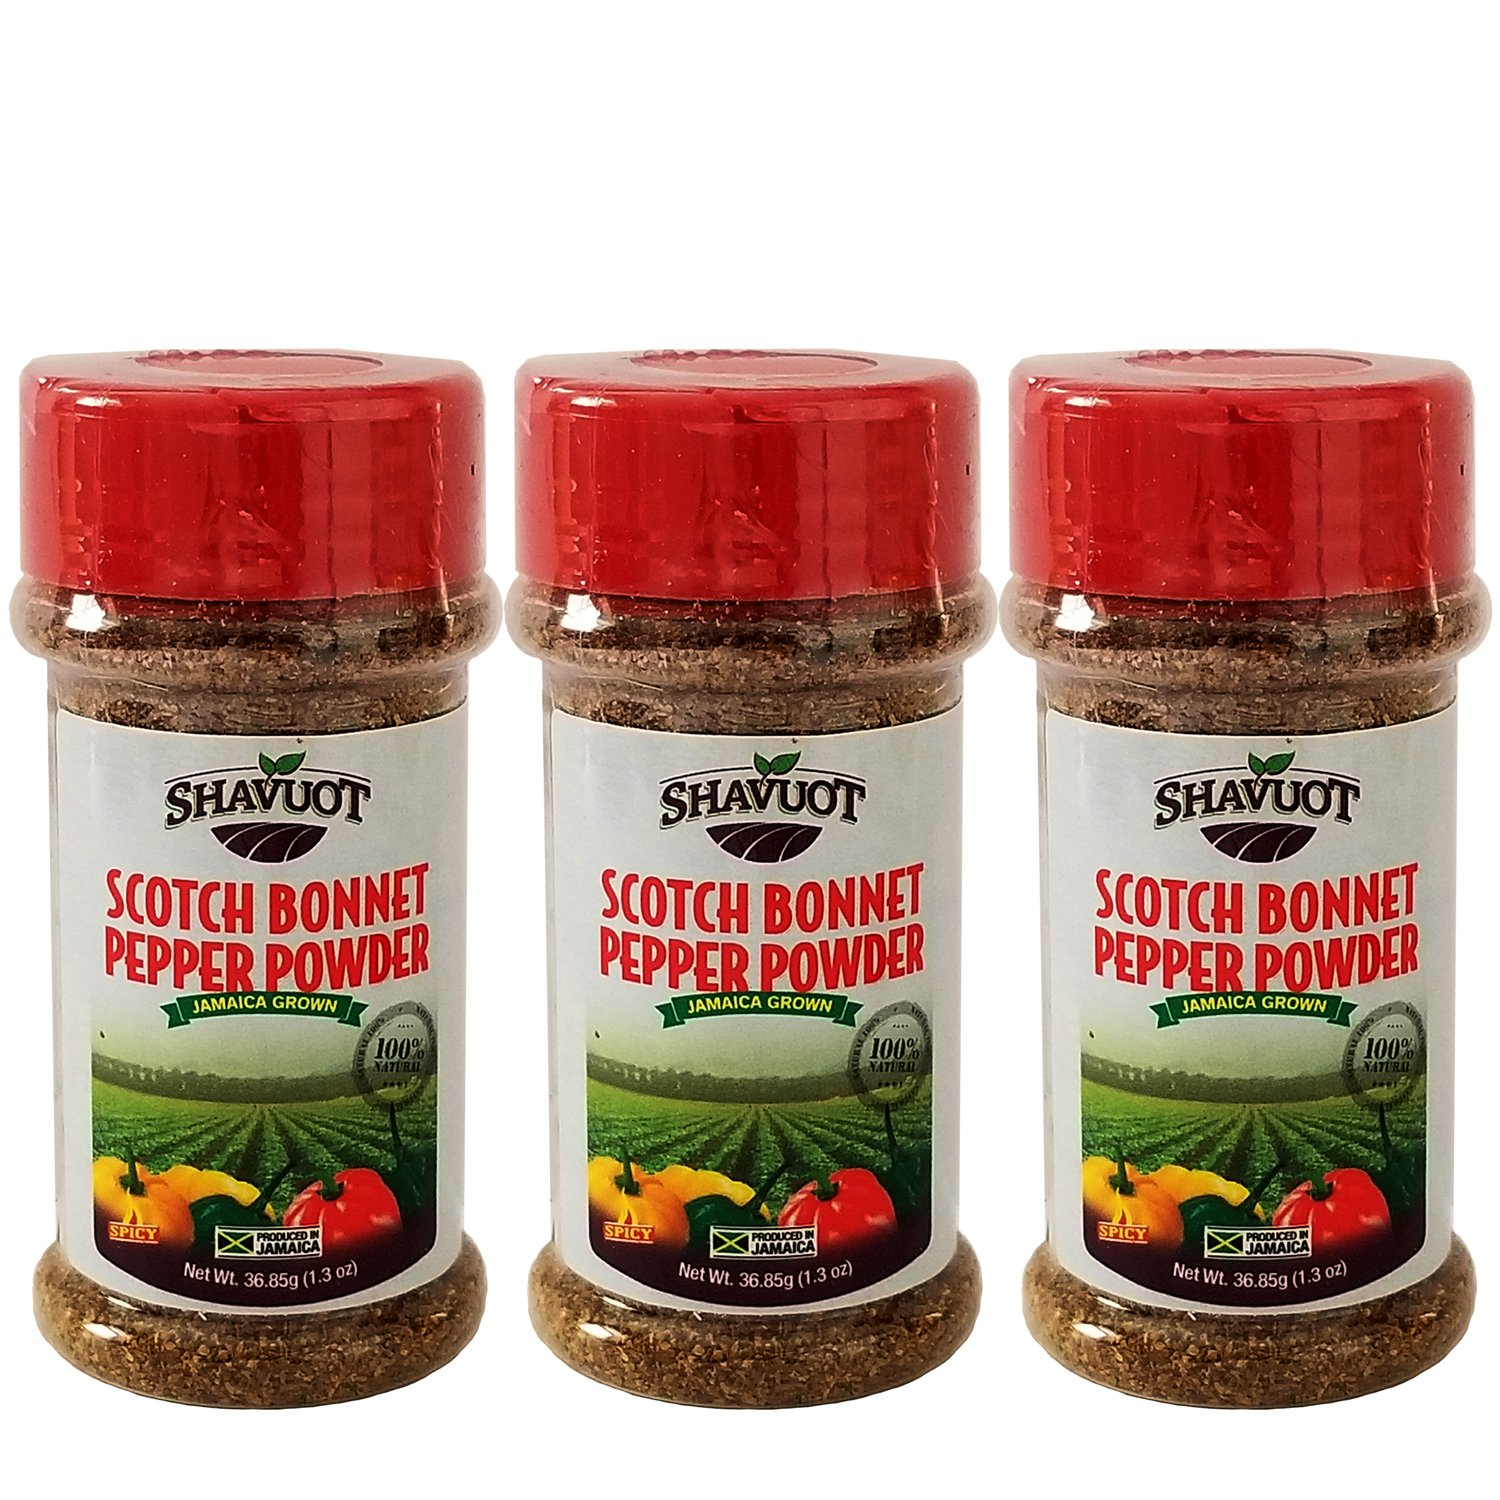 Shavuot Scotch Bonnet Pepper Powder (Pack of 3)